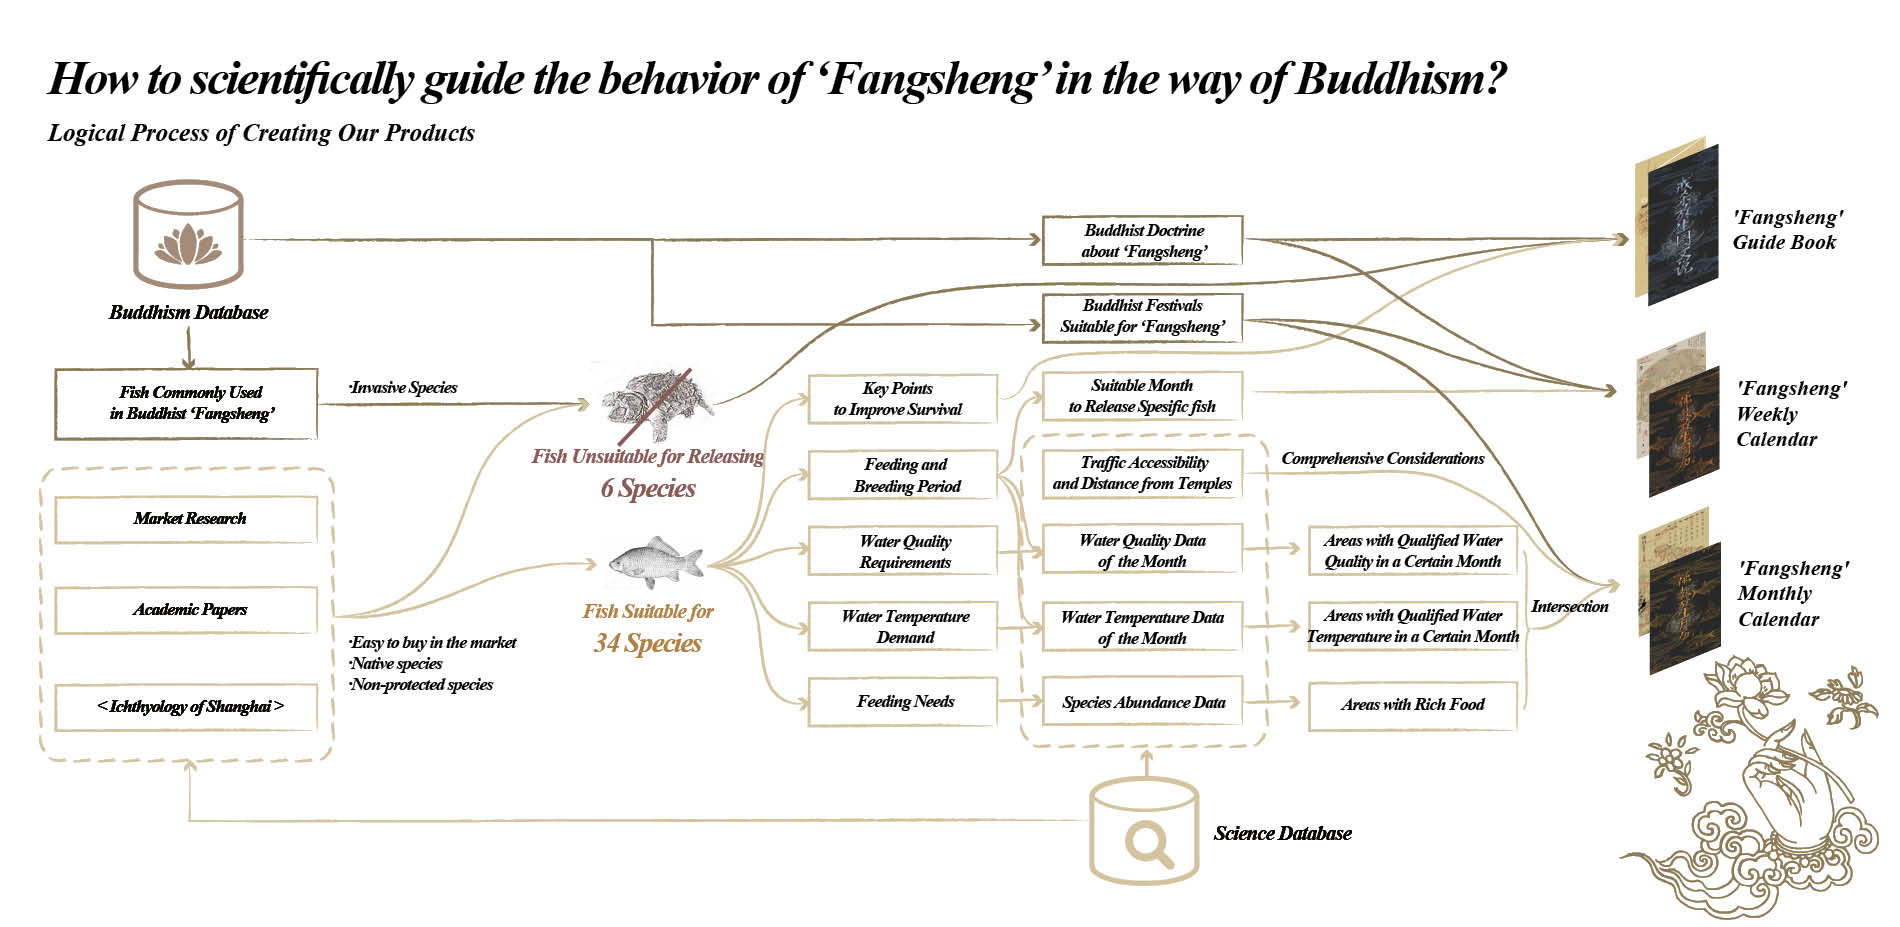 The Logical Process of Making 'Fangsheng' Products